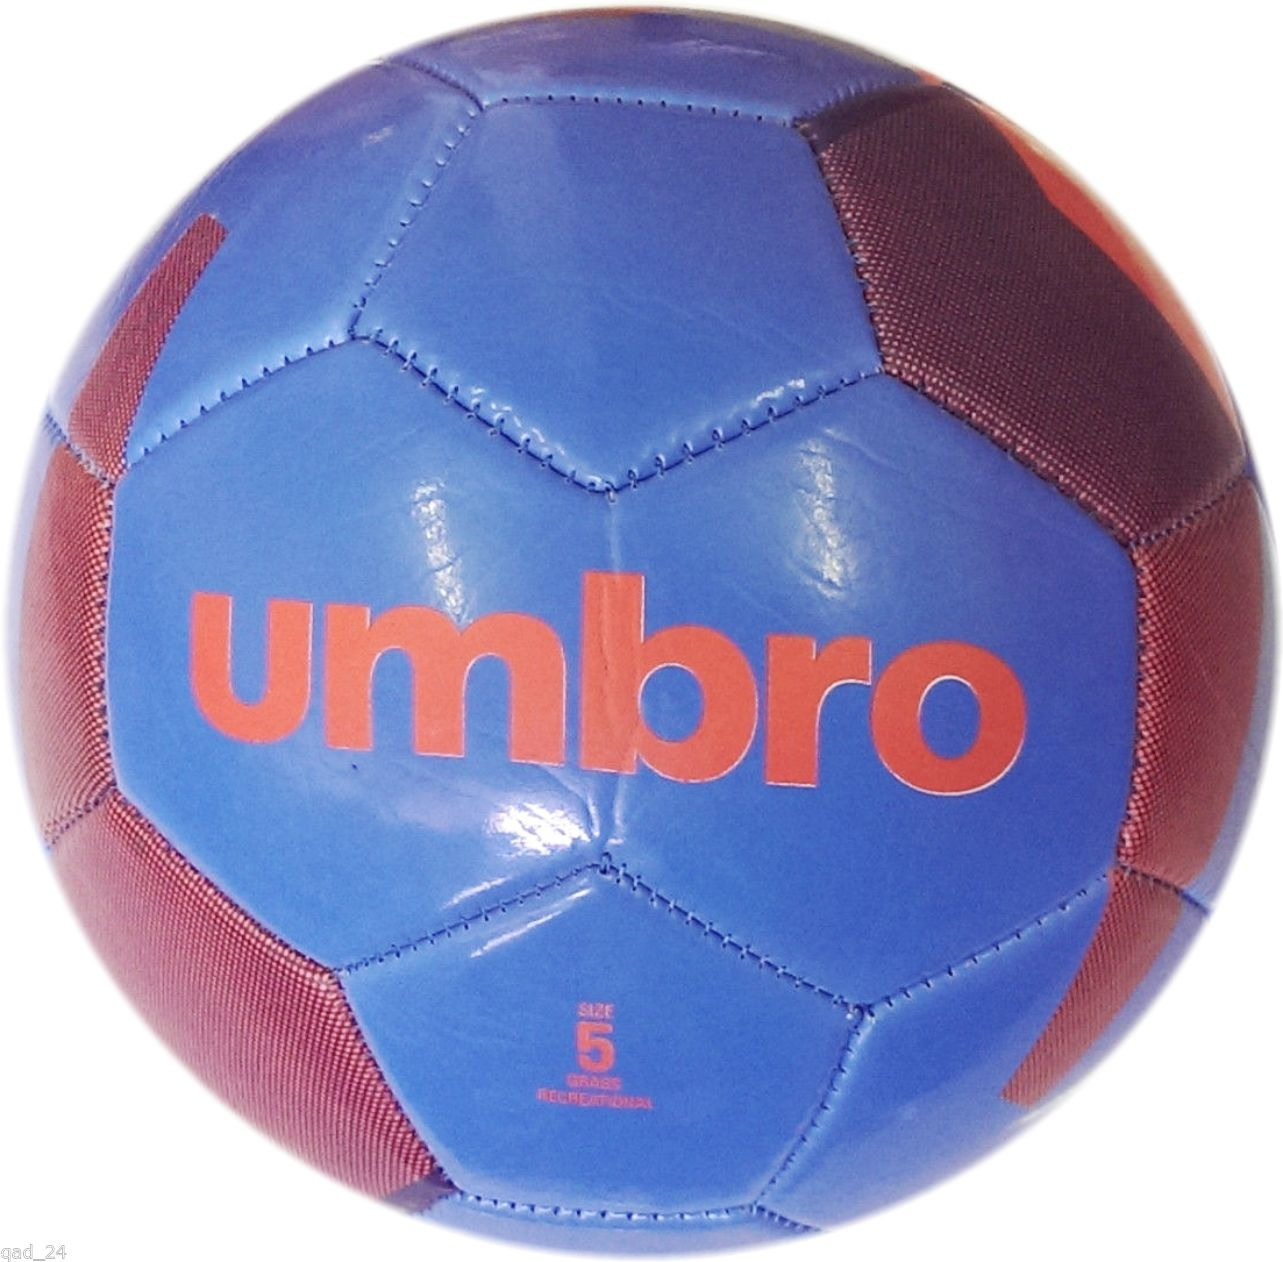 Umbro-Football-League-Soccer-Ball-Size-5-Park-Training-Champions-Trainer-Grass